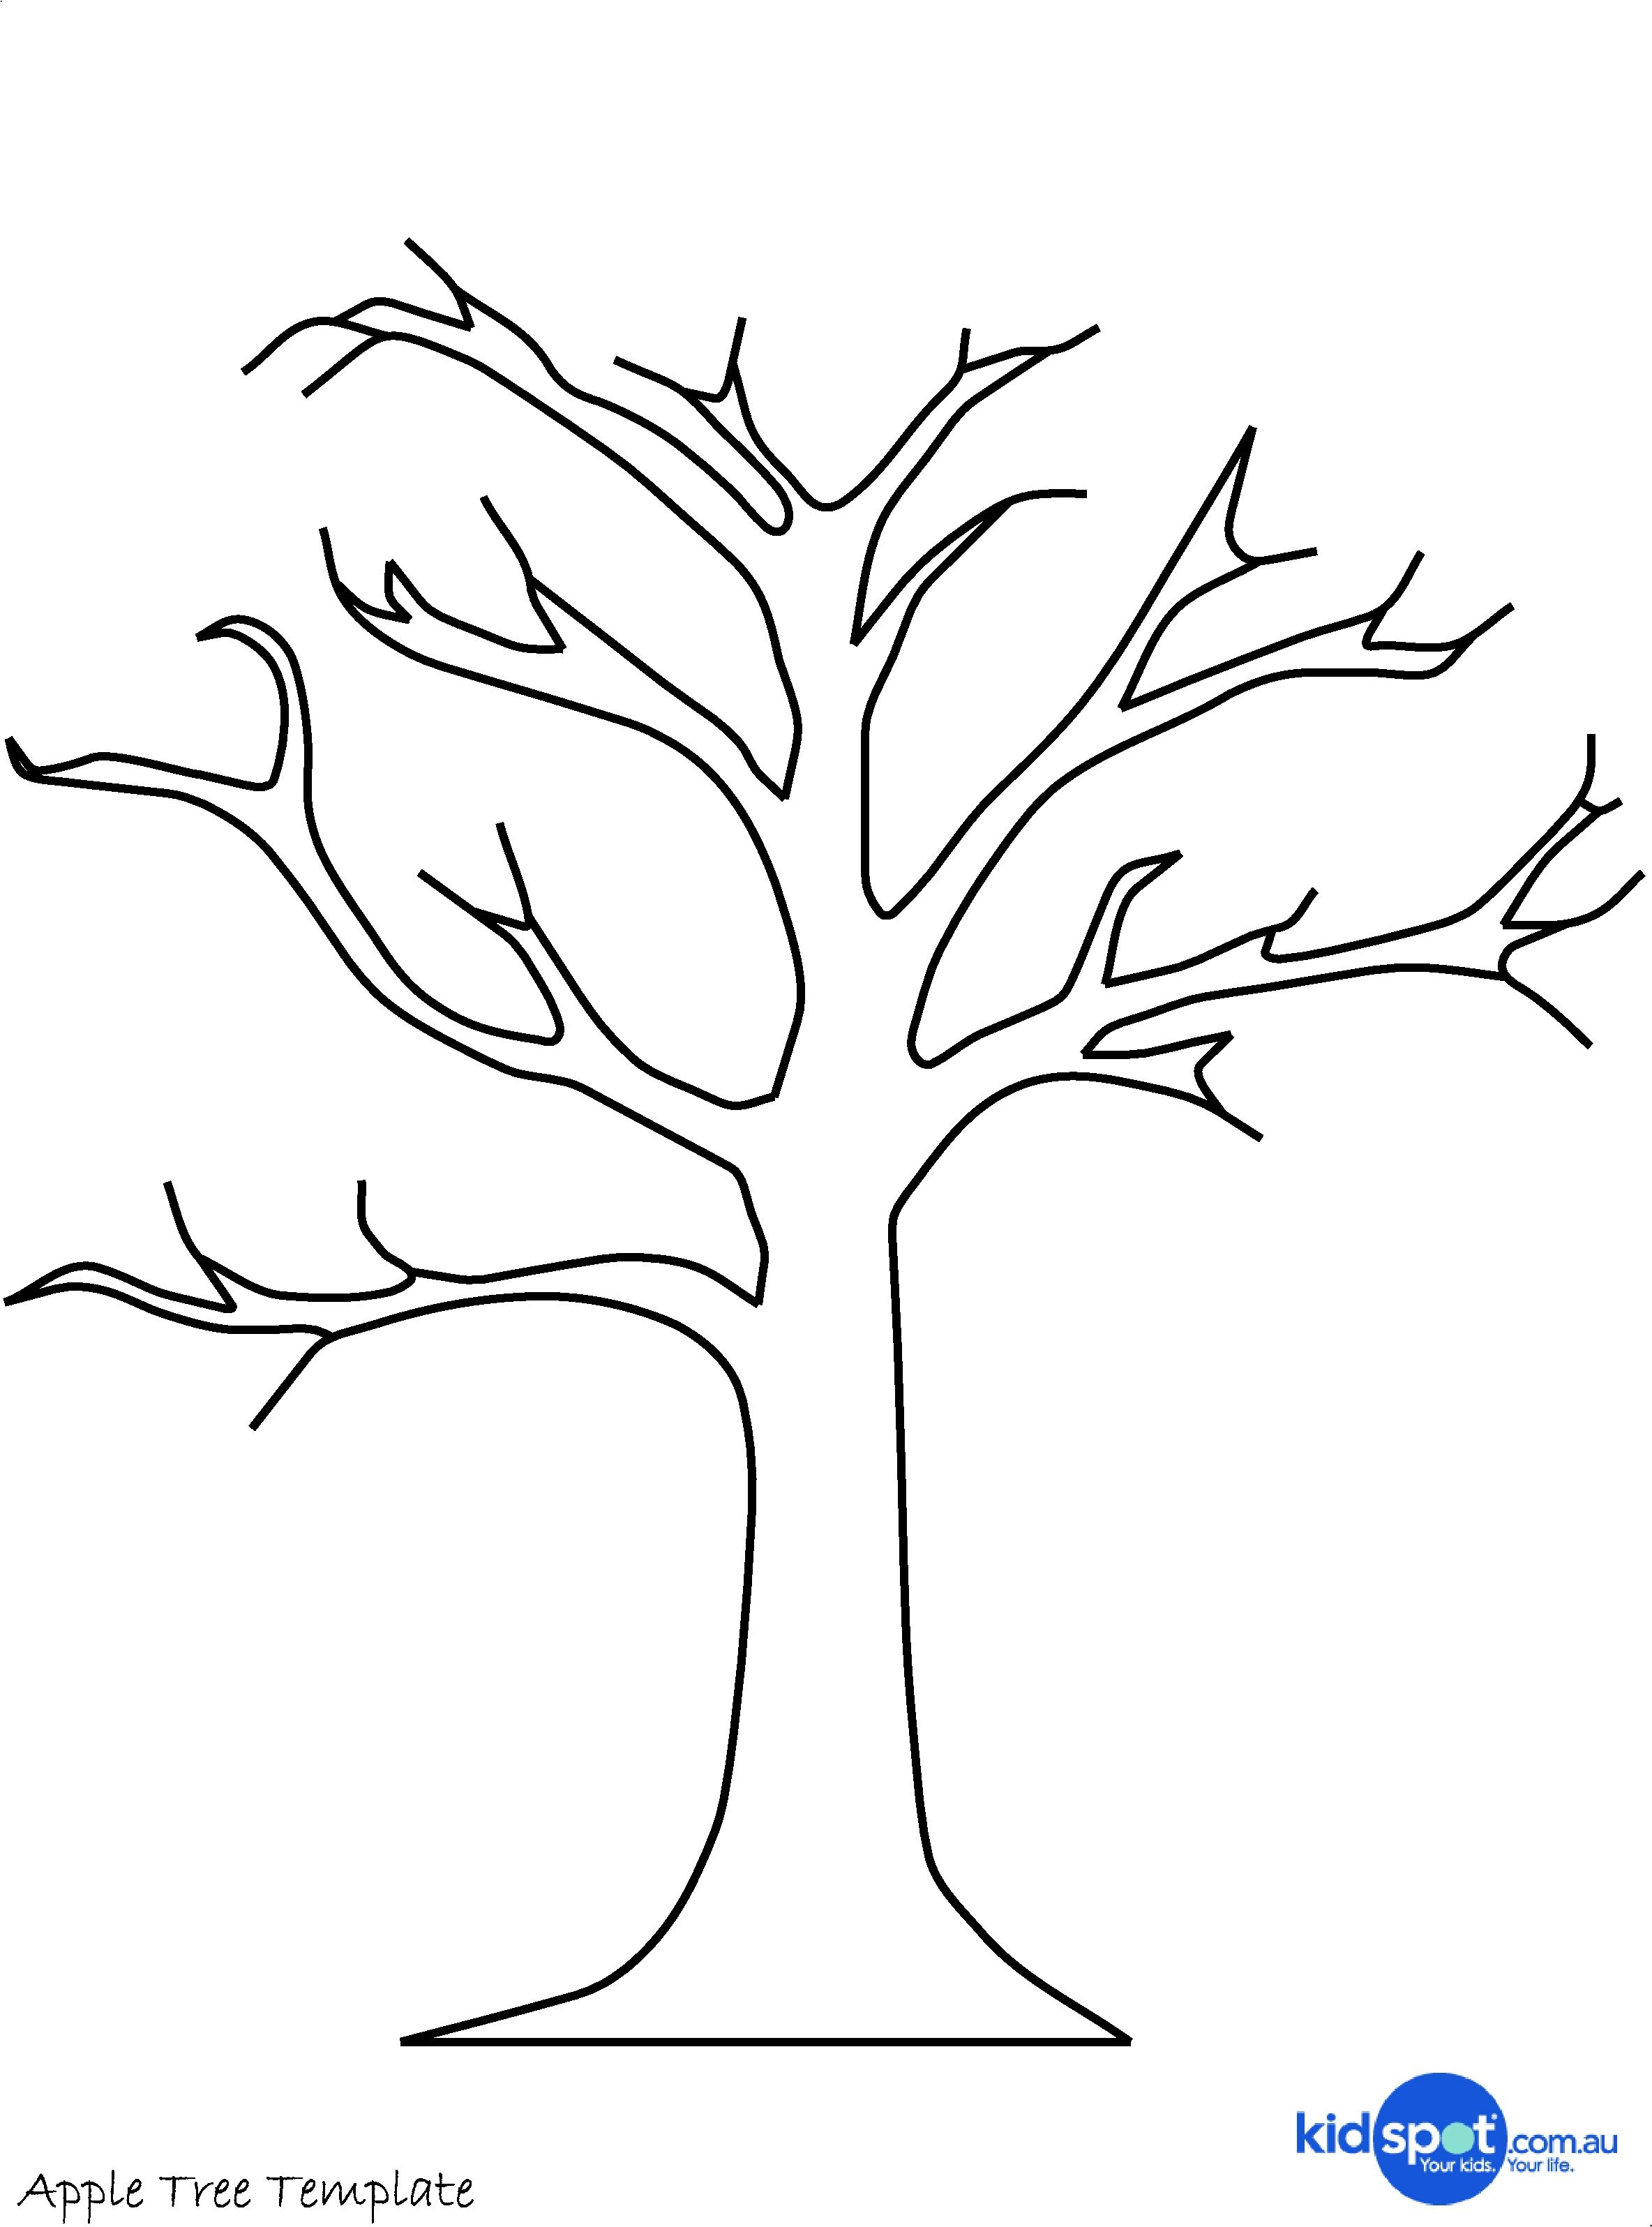 2368x3192 Tree With Few Stems Coloring Pages Printable Coloring For Kids